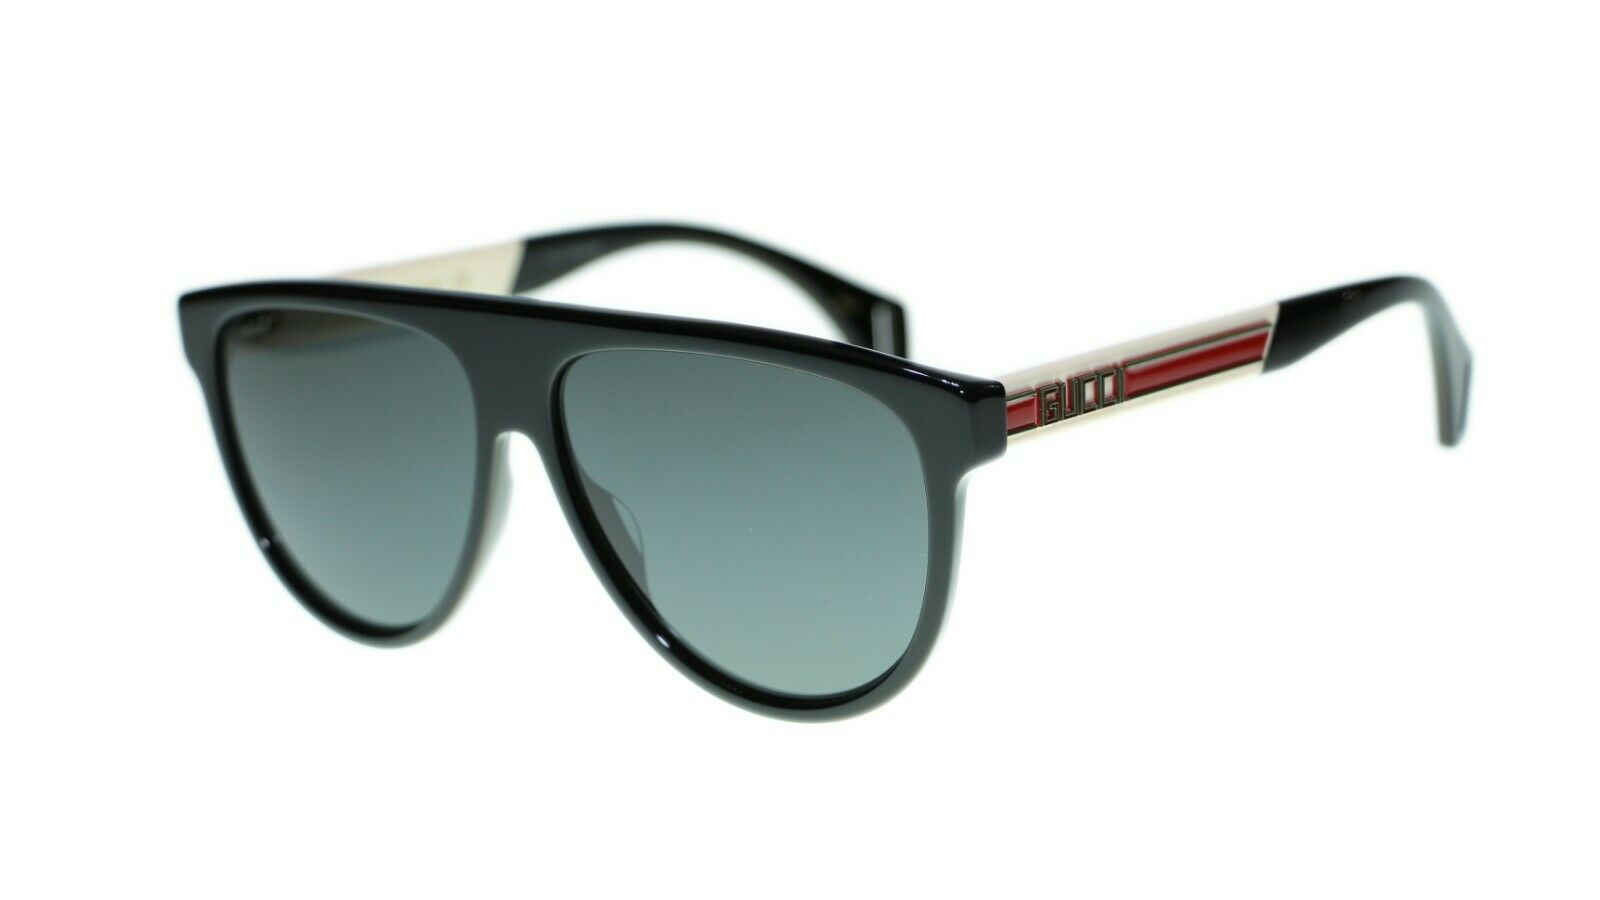 6c231a98e4 Gucci Sunglasses: 2 customer reviews and 208 listings